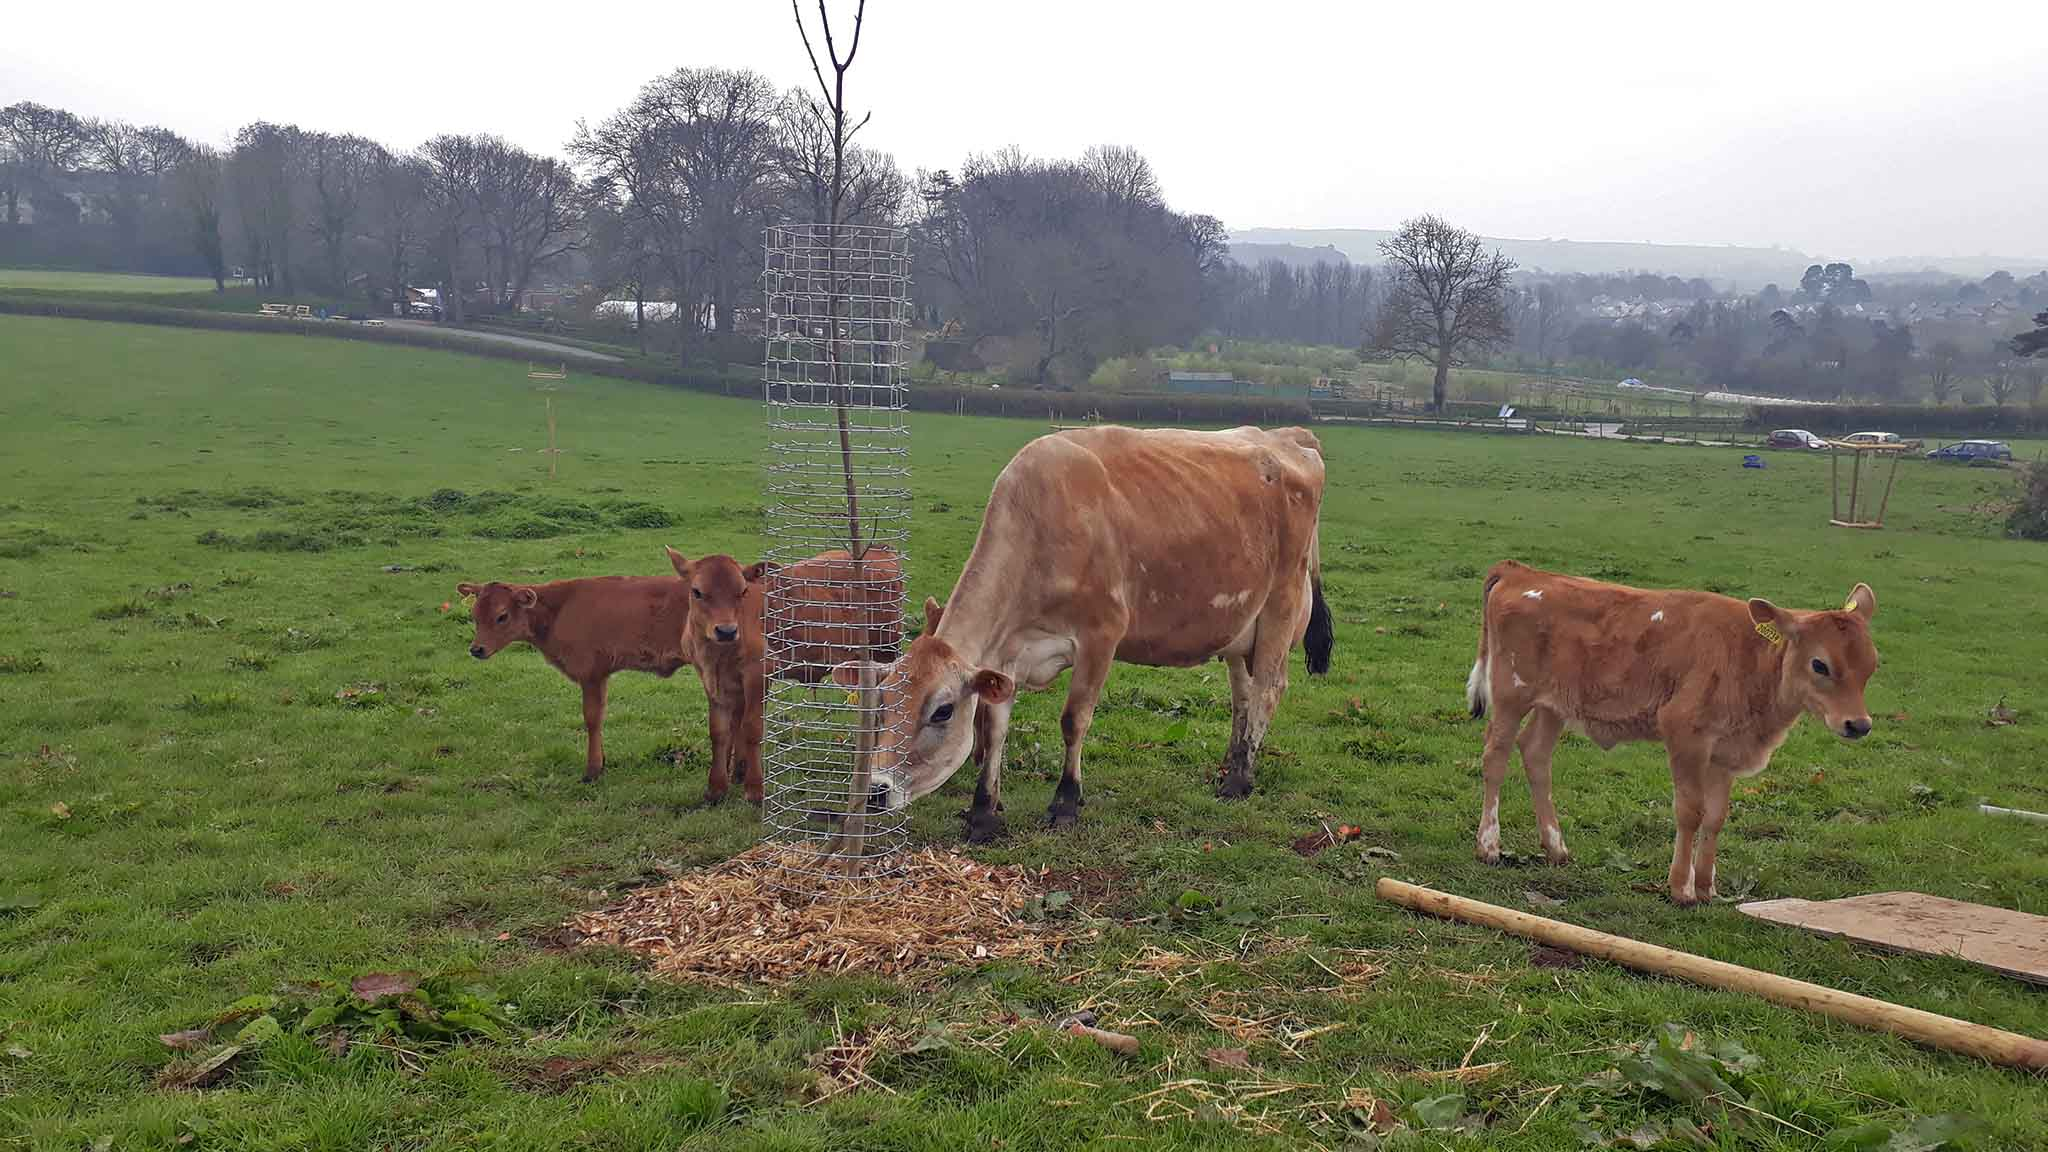 Cows mill around one of our new Cactus Guards on Plum Plot